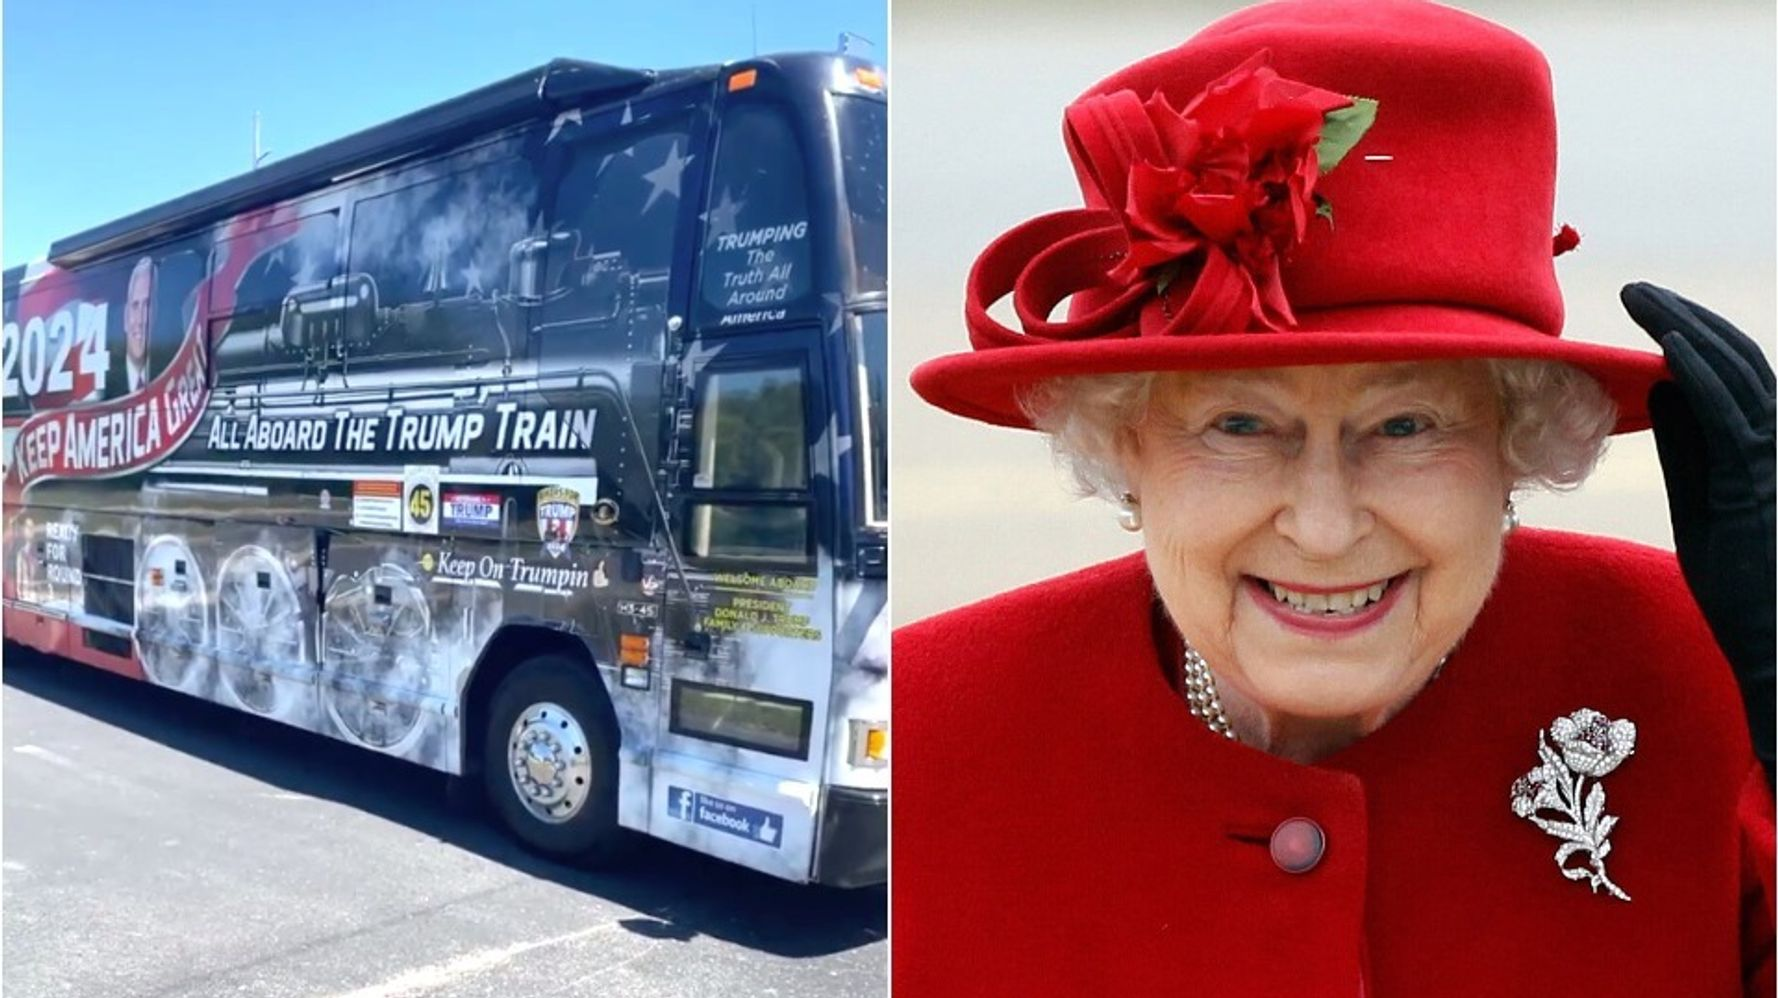 Buckingham Palace Wants Picture Of 'MAGA' Queen Elizabeth Removed From 'Trump Train'